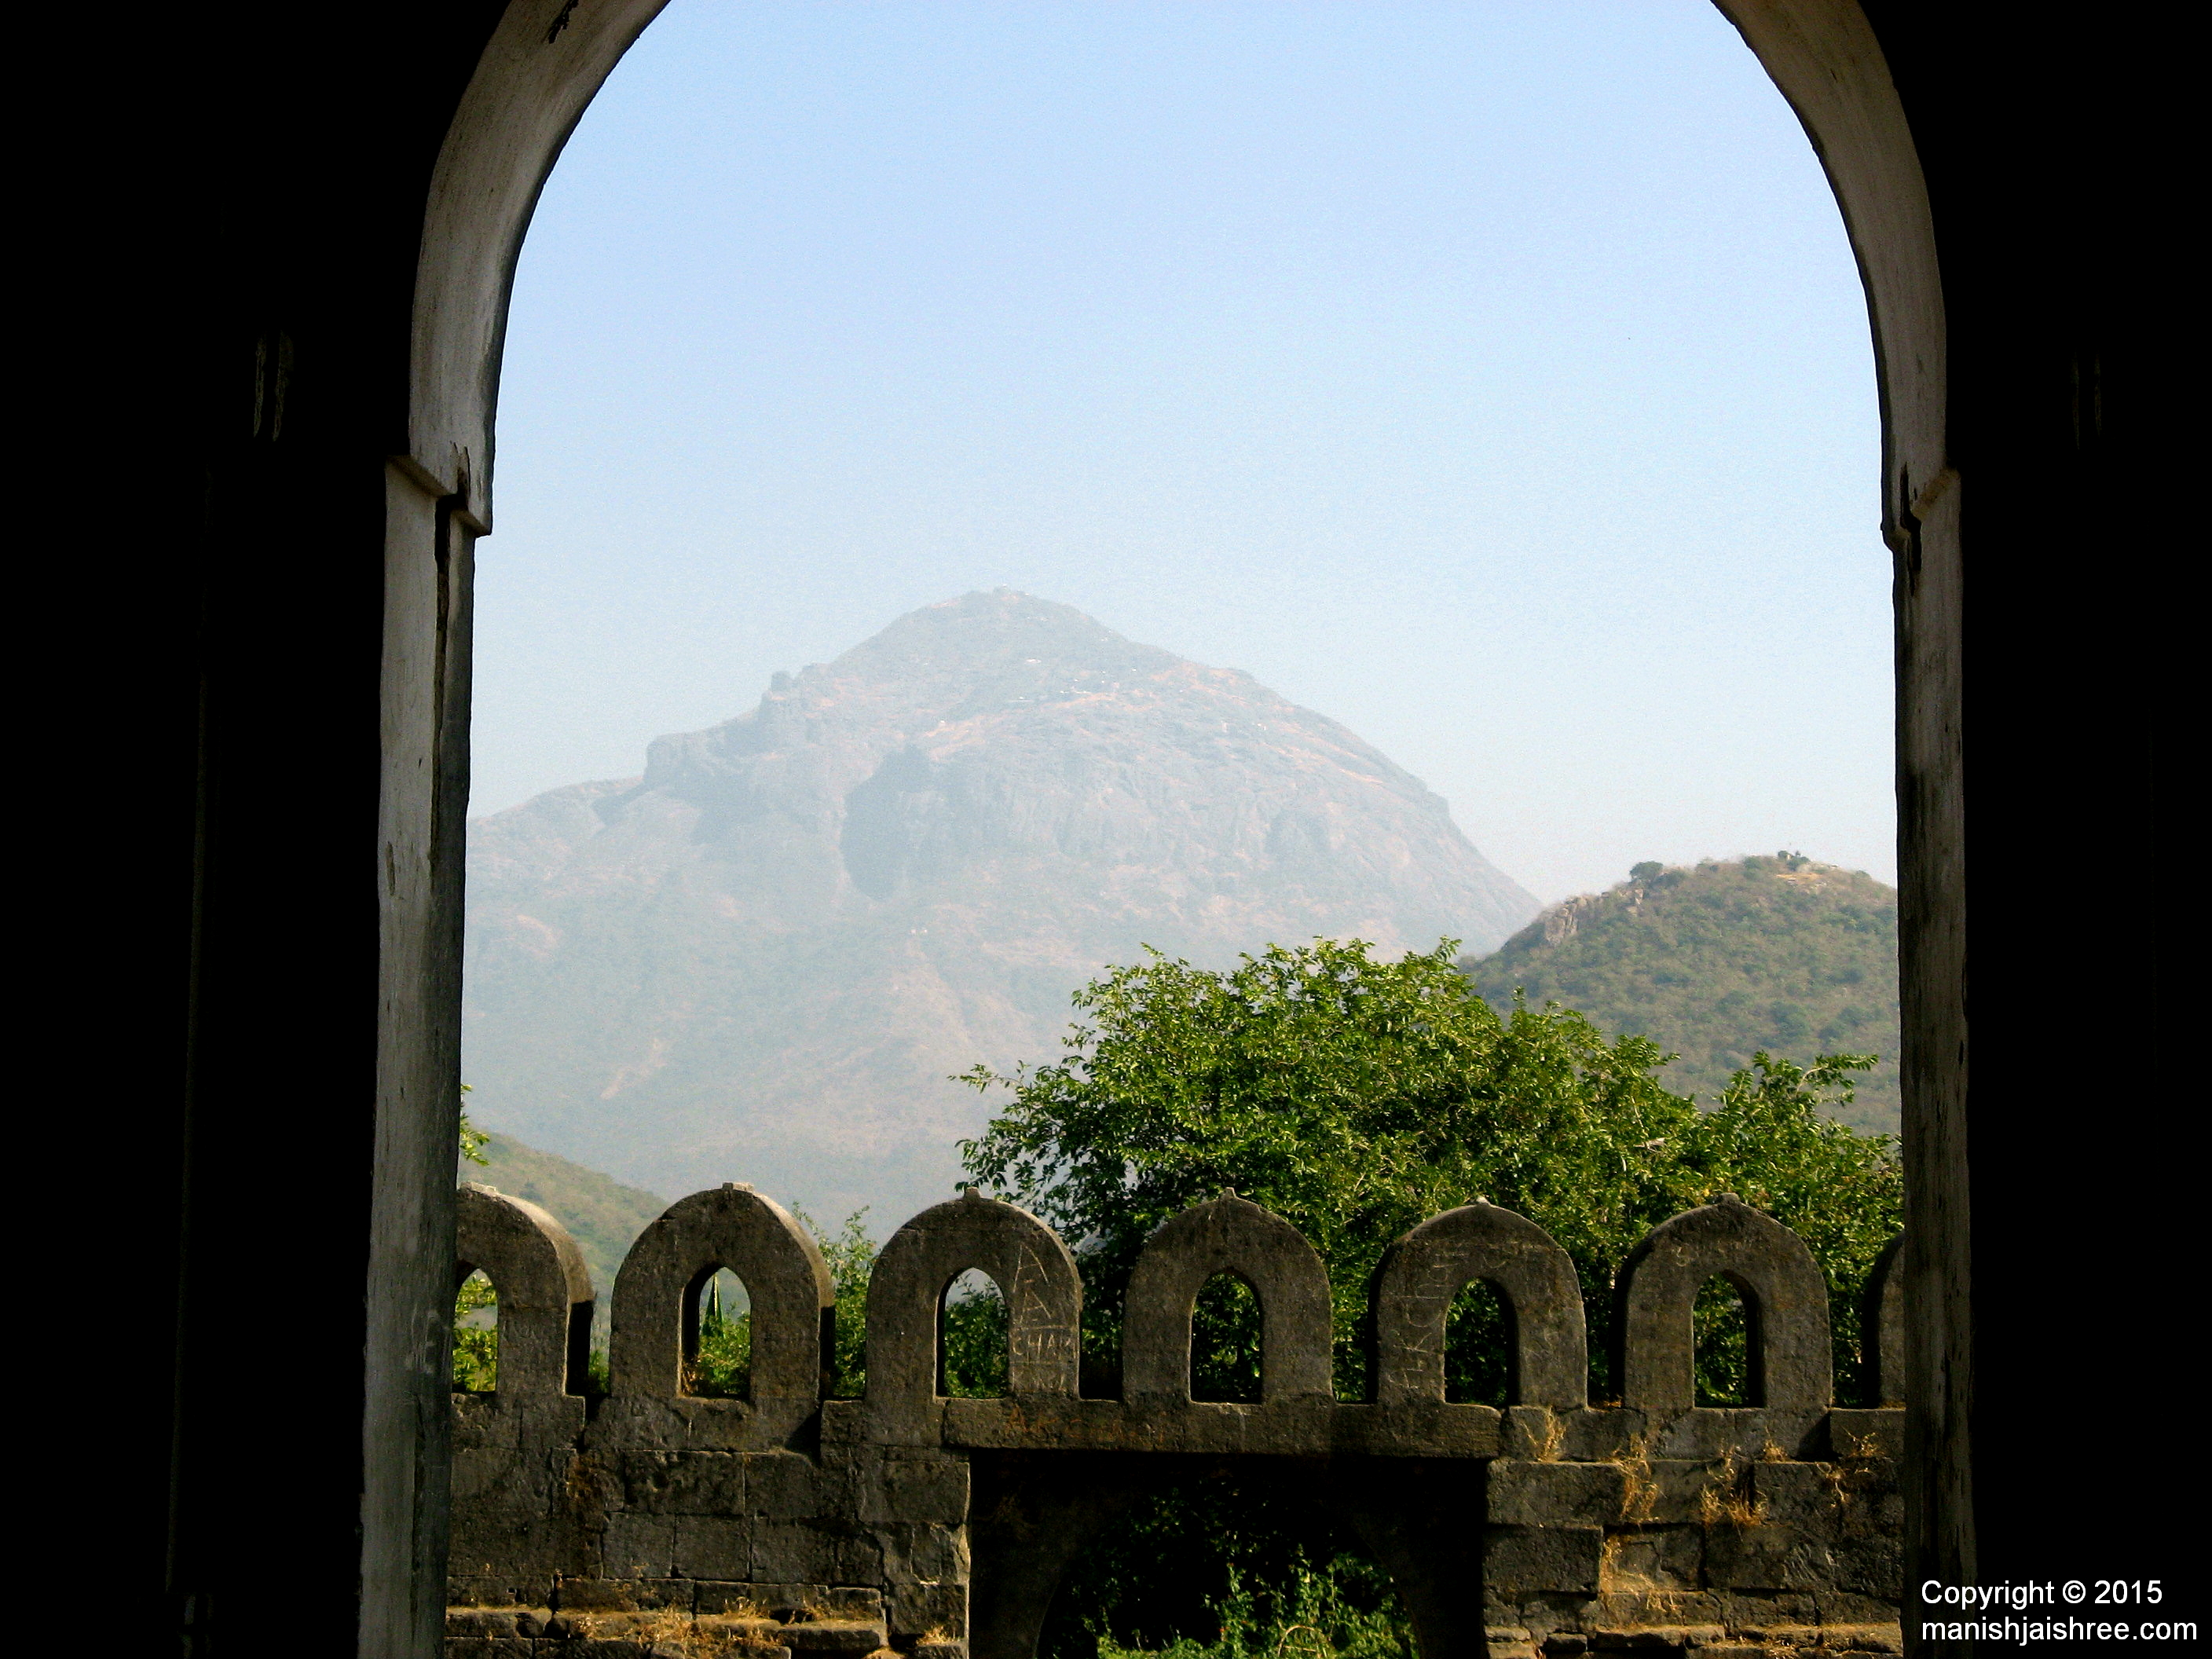 Mount Girnar as seen from Uparkot Fort, Junagarh